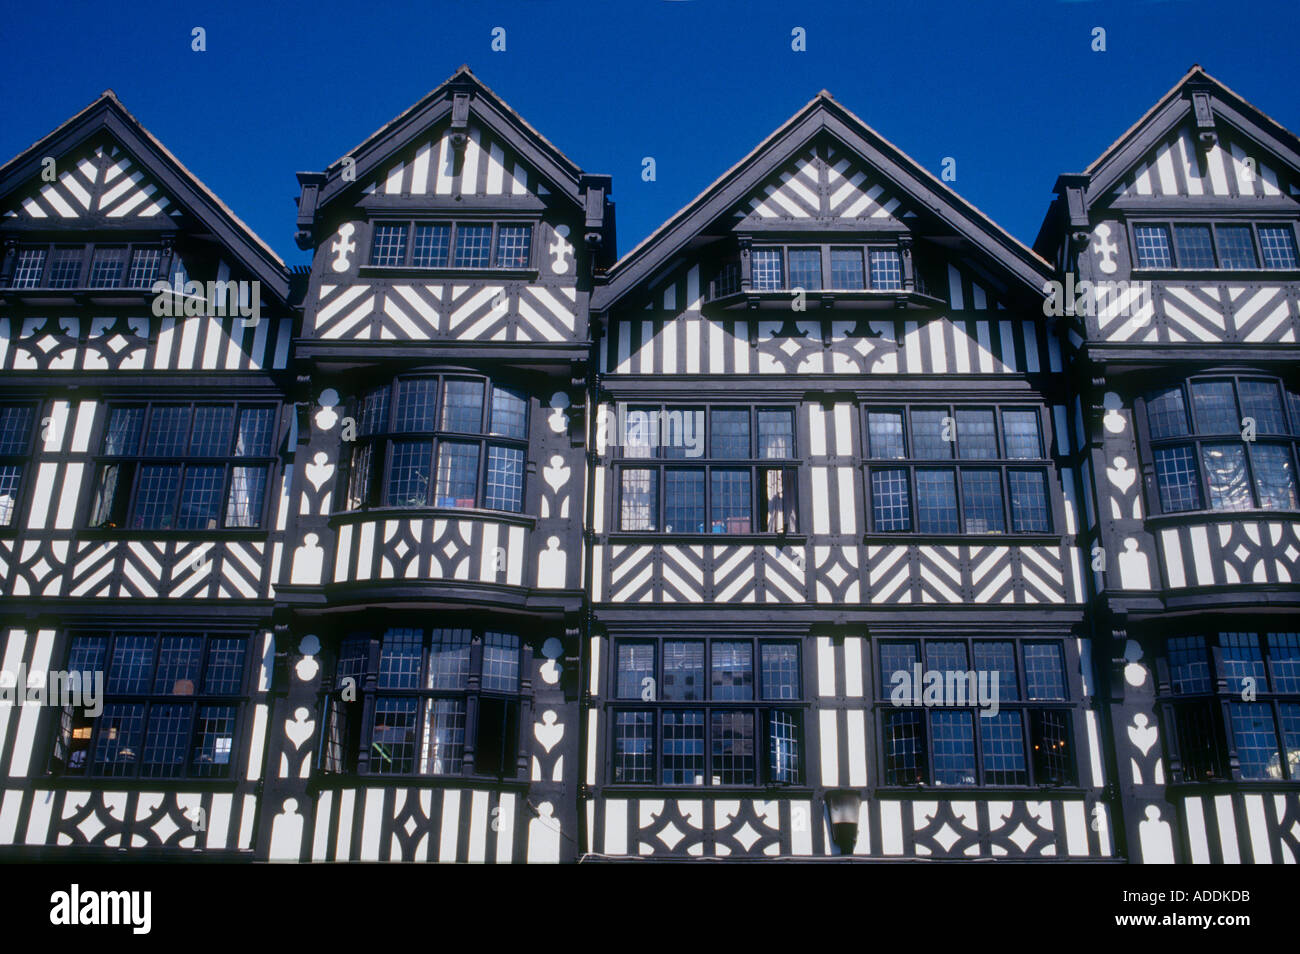 Tudor Architecture half timbered tudor buildings chester england stock photo, royalty